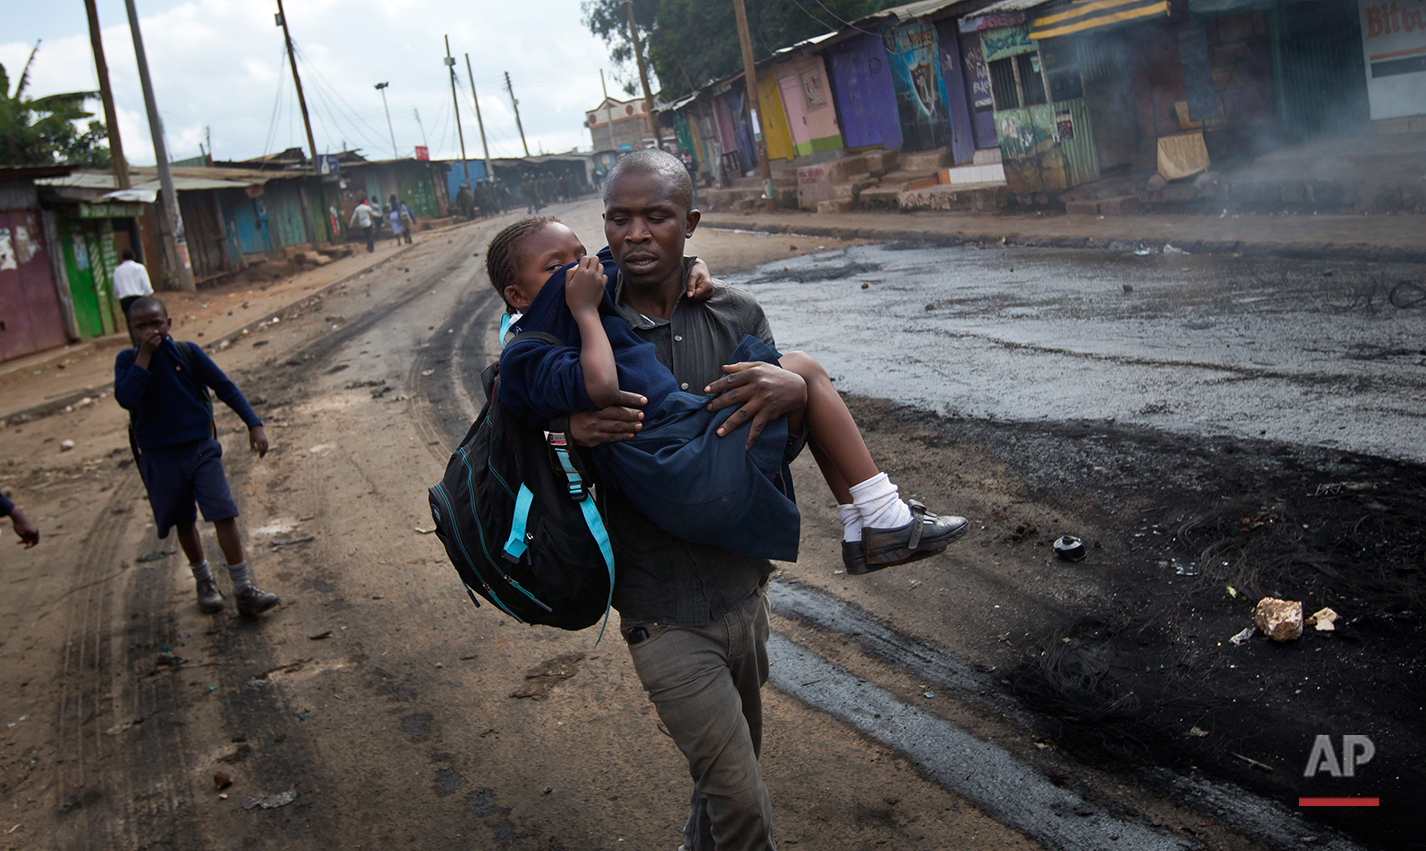 A man carries a schoolgirl overcome by tear gas to safety, past the charred remains of a burning barricade, as police firing tear gas engage protesters throwing rocks in the Kibera slum of Nairobi, Kenya Monday, May 23, 2016. Kenya's police shot, beat and tear gassed opposition demonstrators across the country who tried to gather to call for the electoral commission to be dissolved due to allegations of bias and corruption. (AP Photo/Ben Curtis)